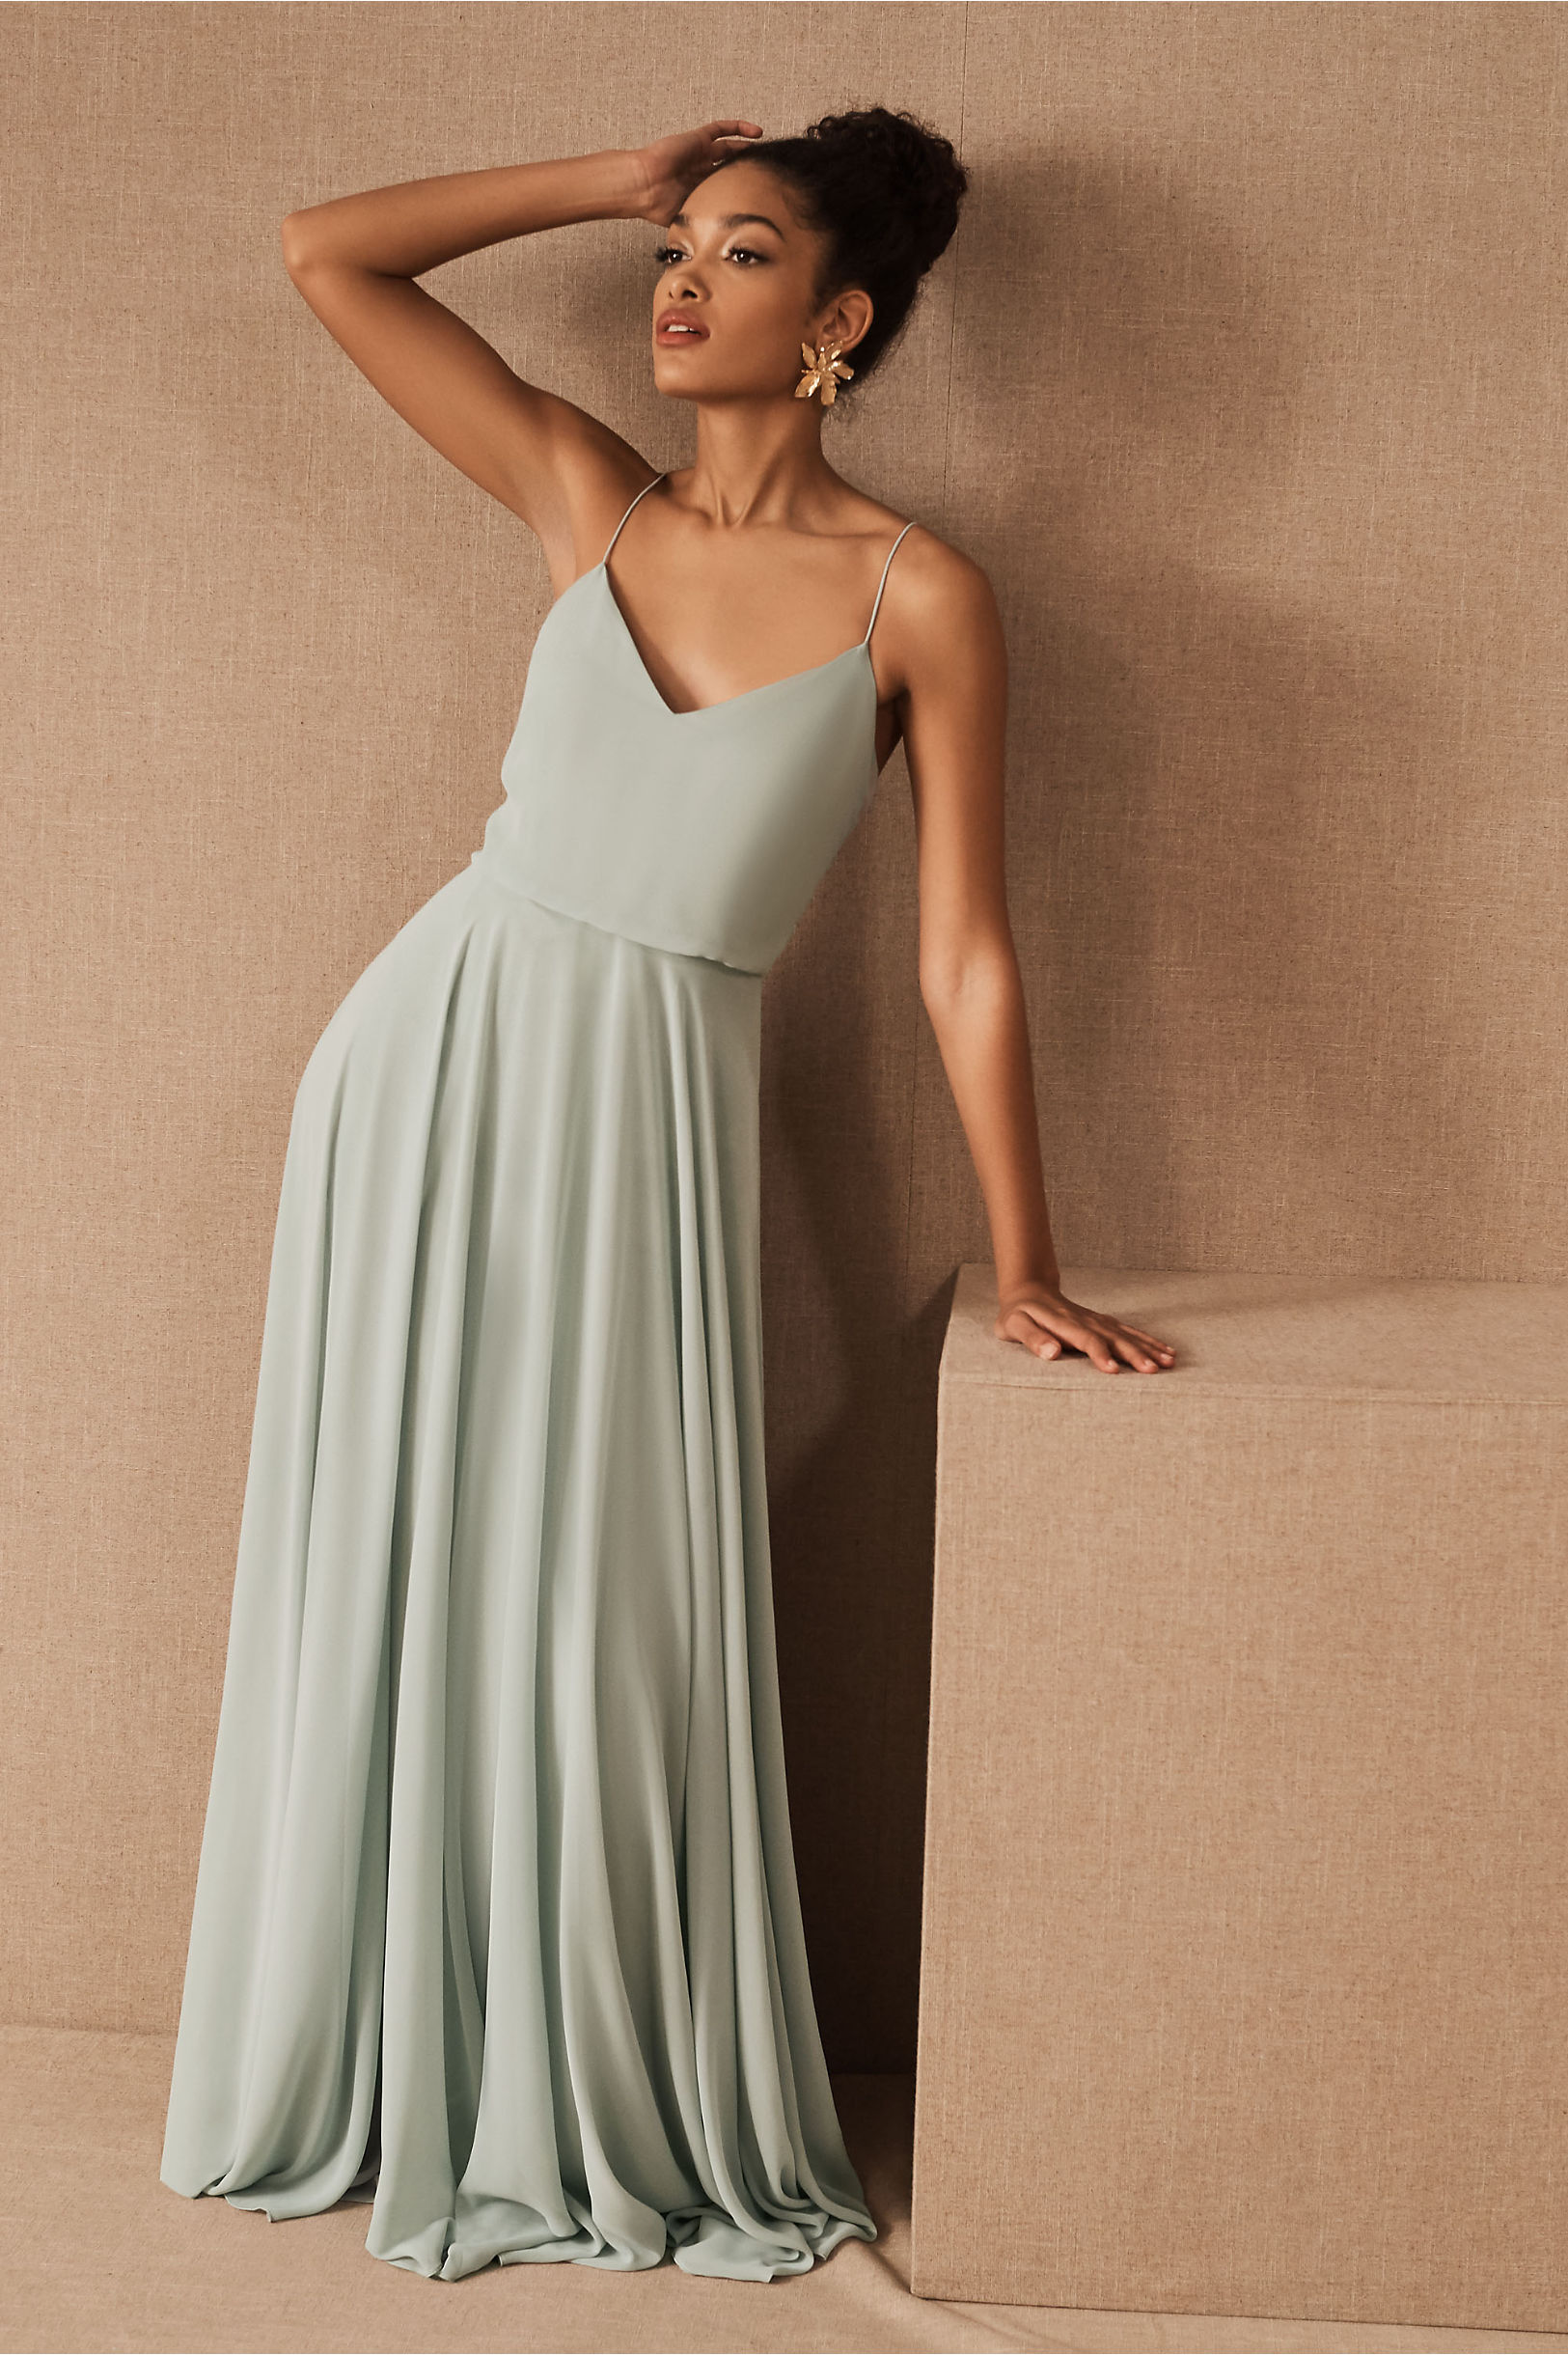 Inesse dress cinnamon rose in bridal party bhldn morning mist inesse dress bhldn ombrellifo Images